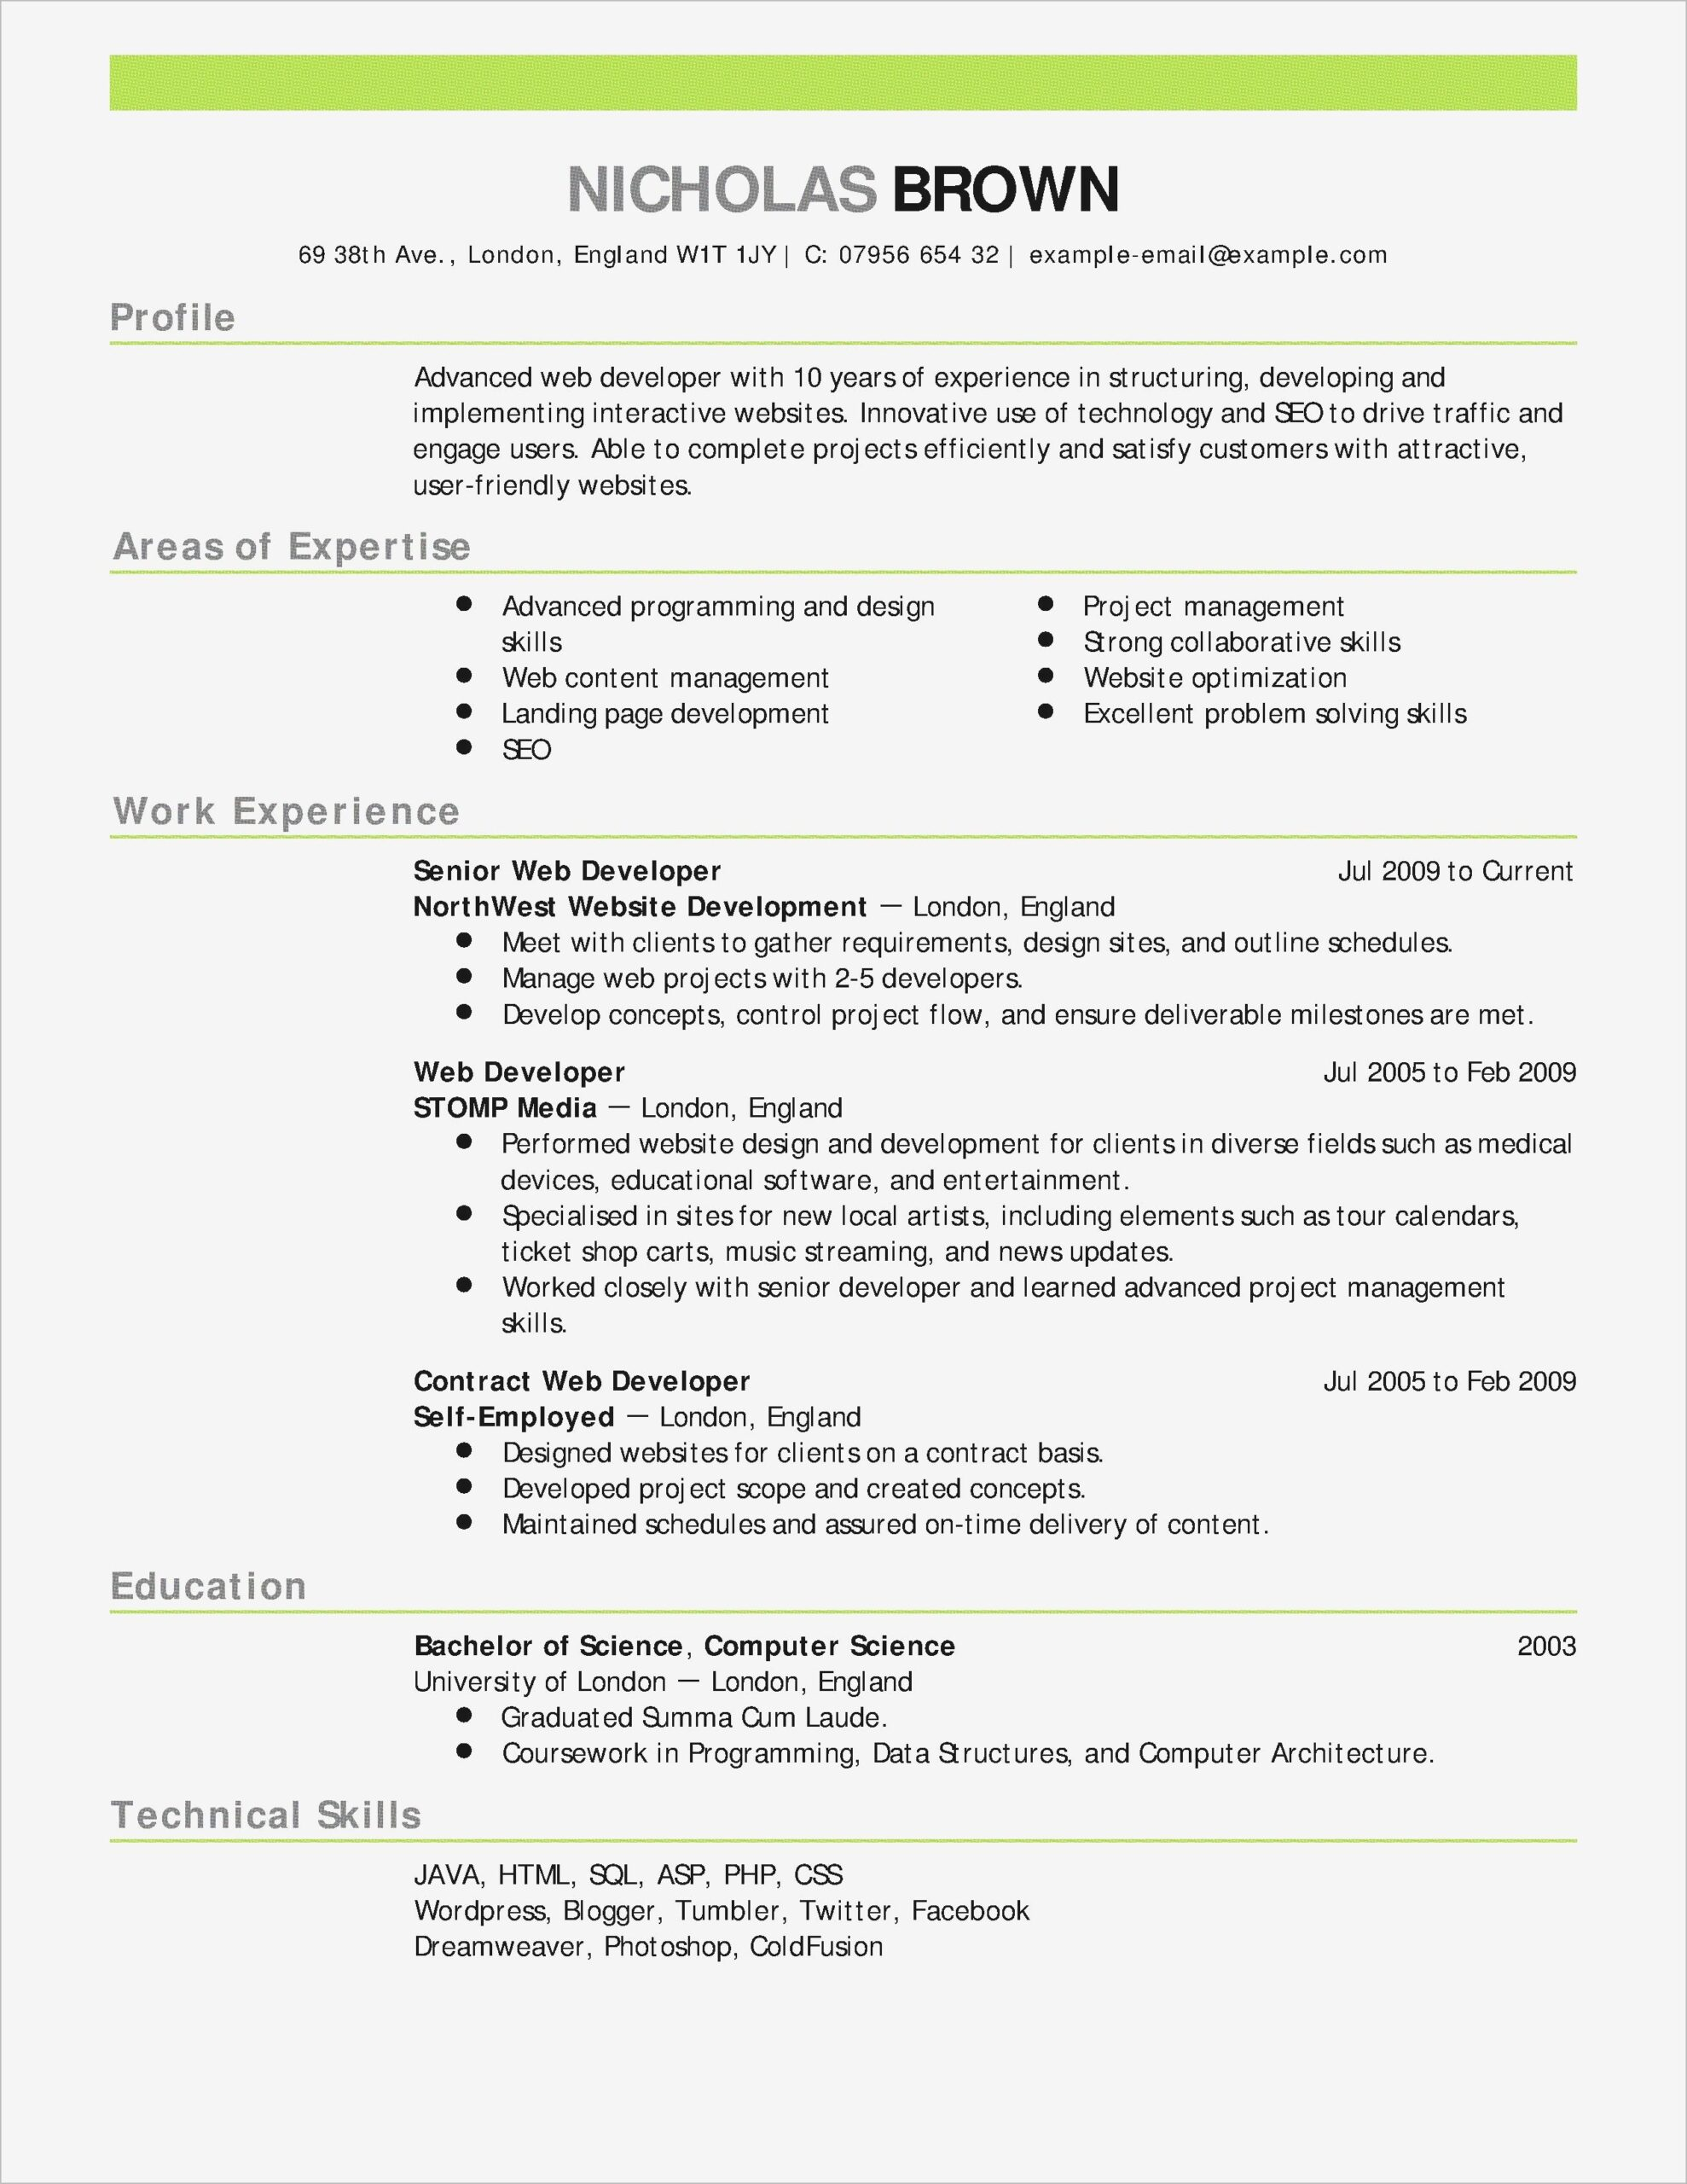 best medical resume writing service buying essays services entry level lpn words Resume Best Medical Resume Writing Services